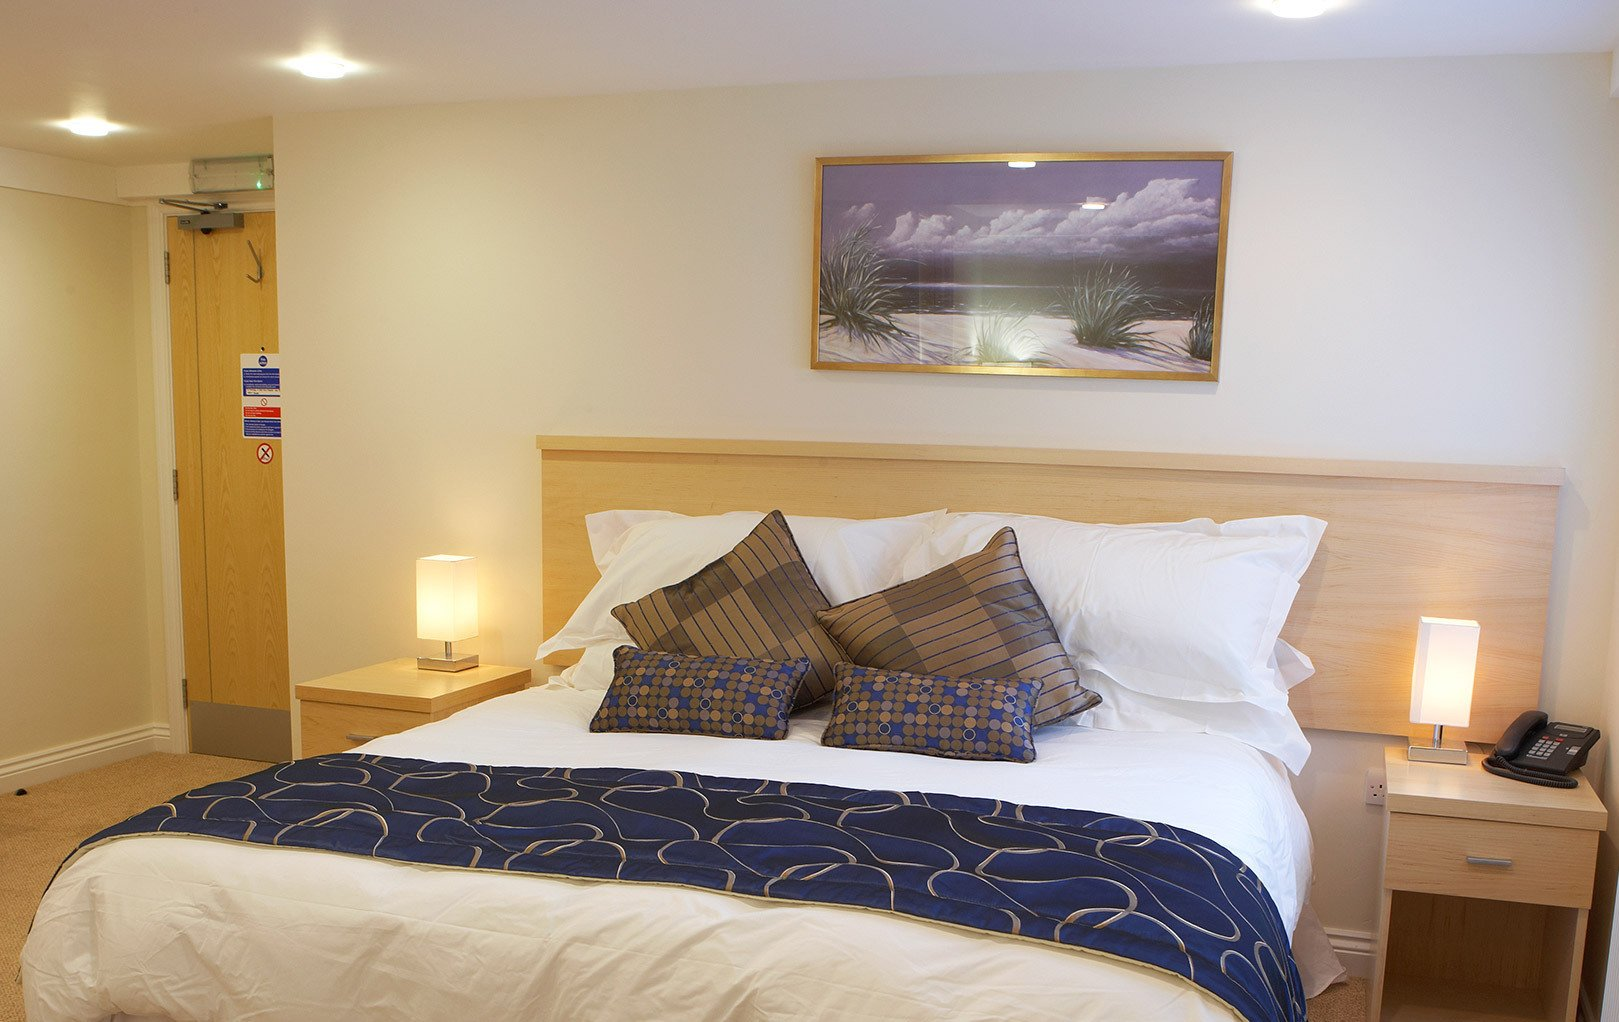 A bedroom in the best hotel for stays in Horsham